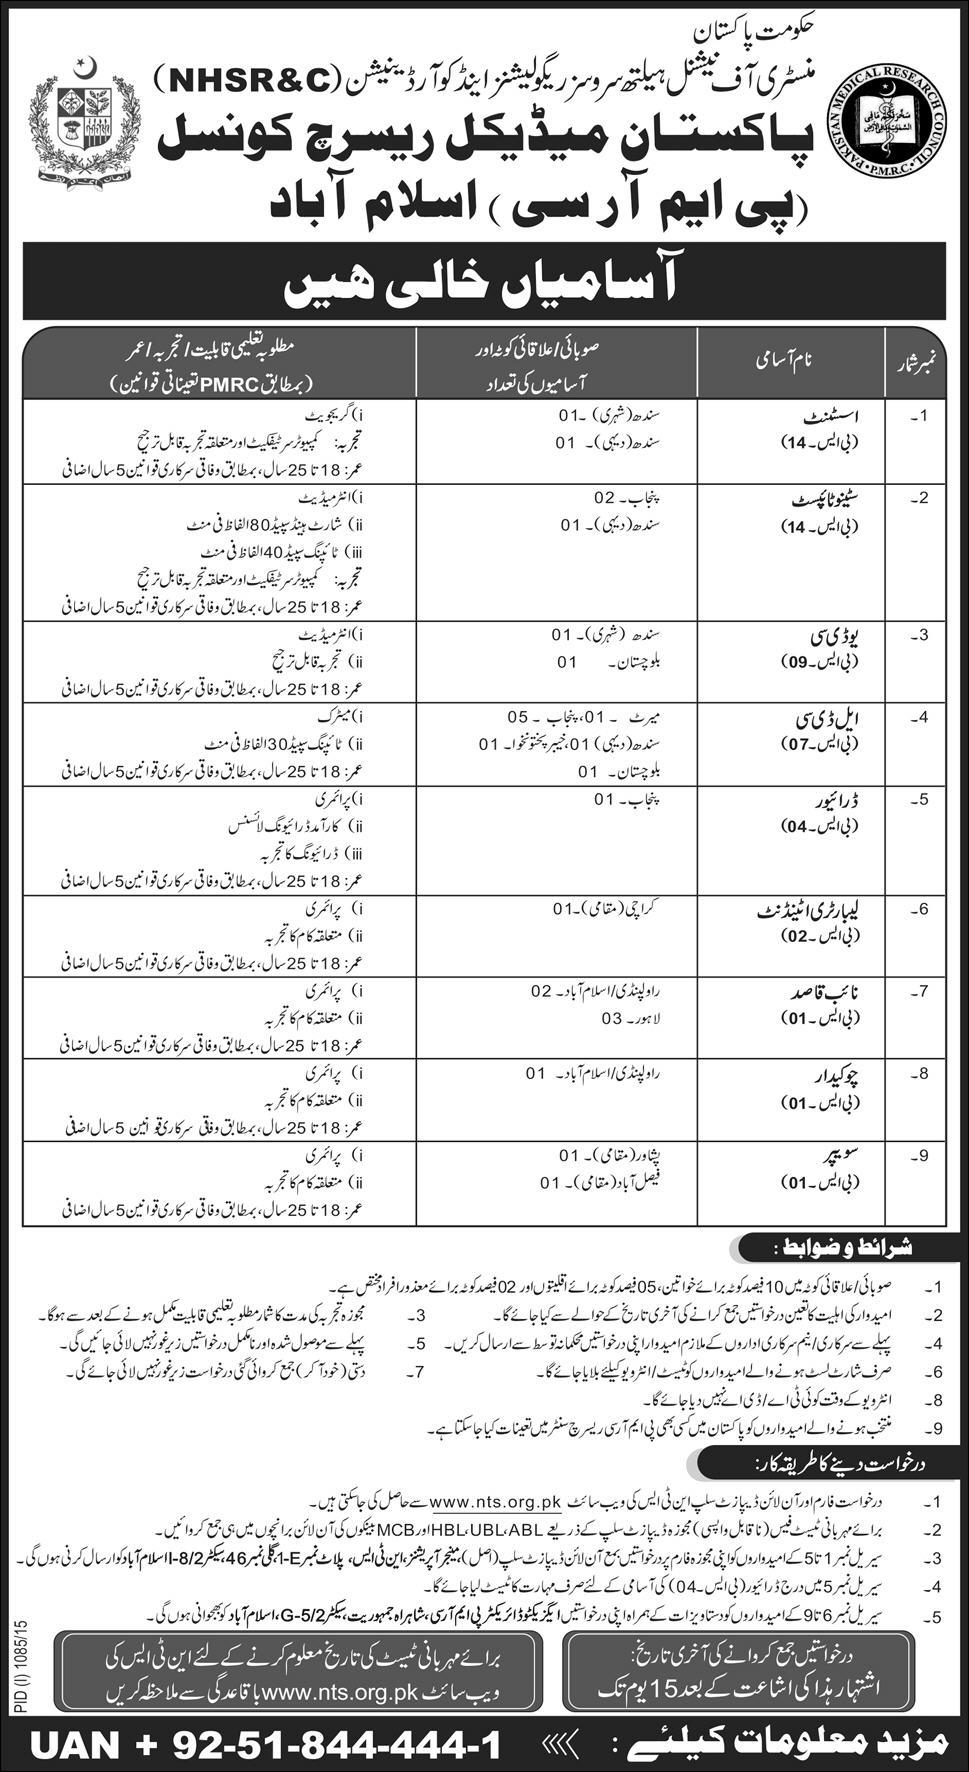 Pakistan Medical Research Council Islamabad NTS Jobs 2019 Advertisement